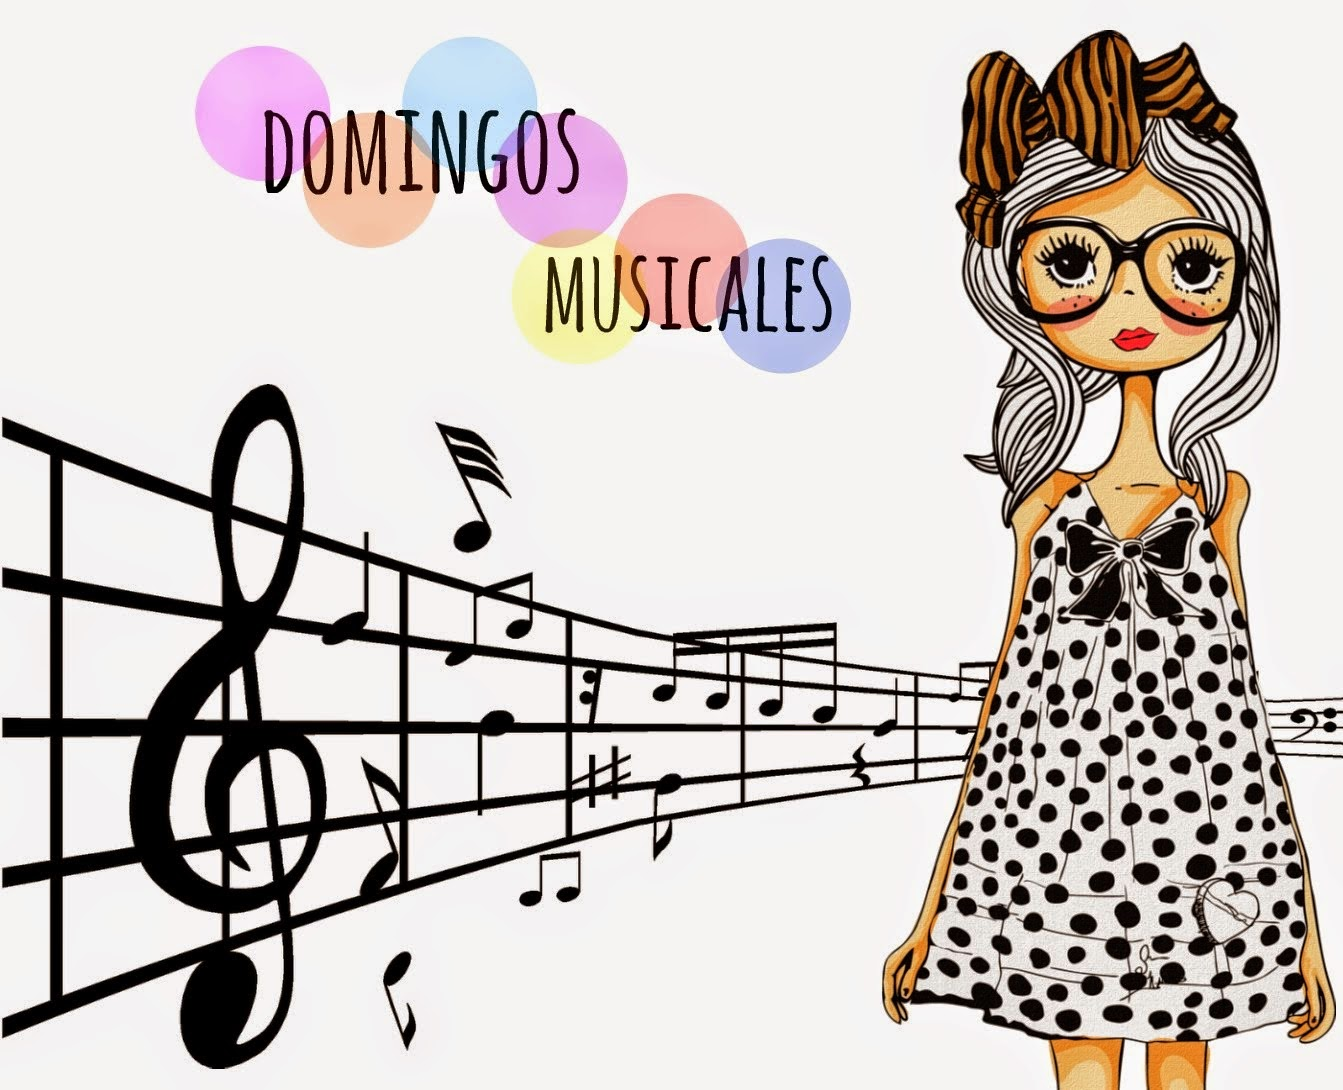 Domingo musical N° 5